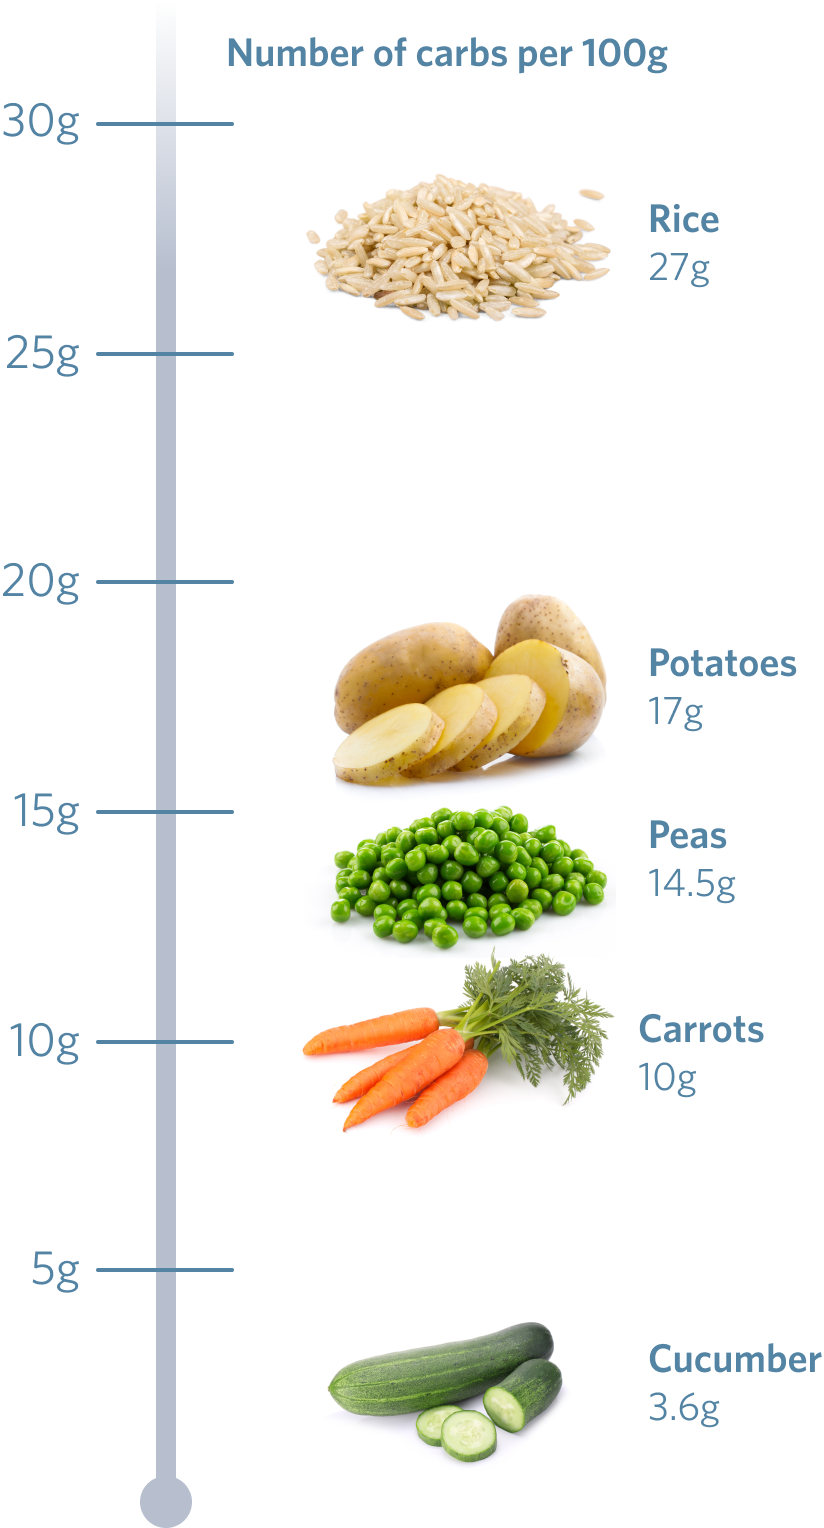 A diagram showing the carb contents (per 100 grams) of common foods: Rice (27g), Potatoes (17g), Peas (14.5g), Carrots (10g), Cucumber (3.6g)